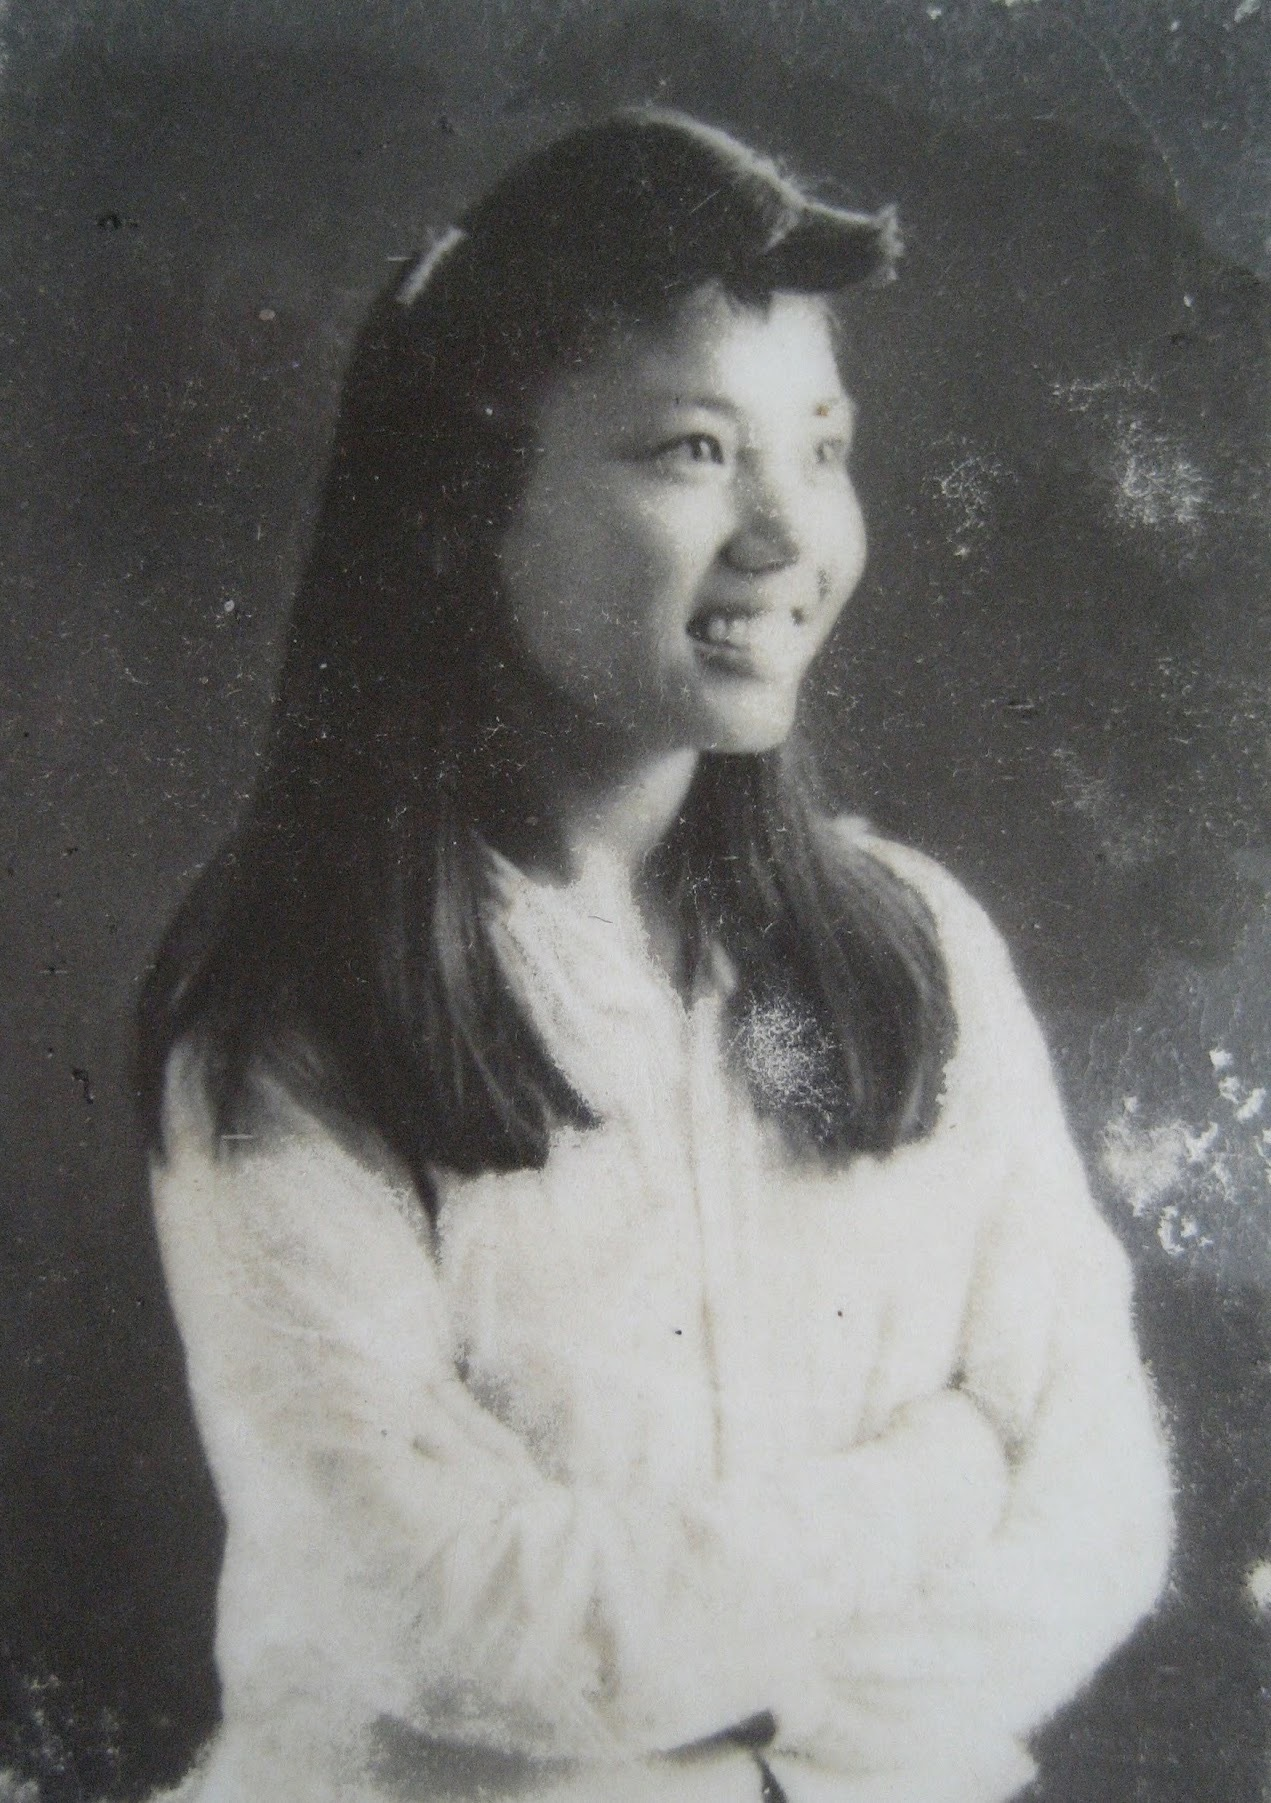 My mother in 1950 by quan0709